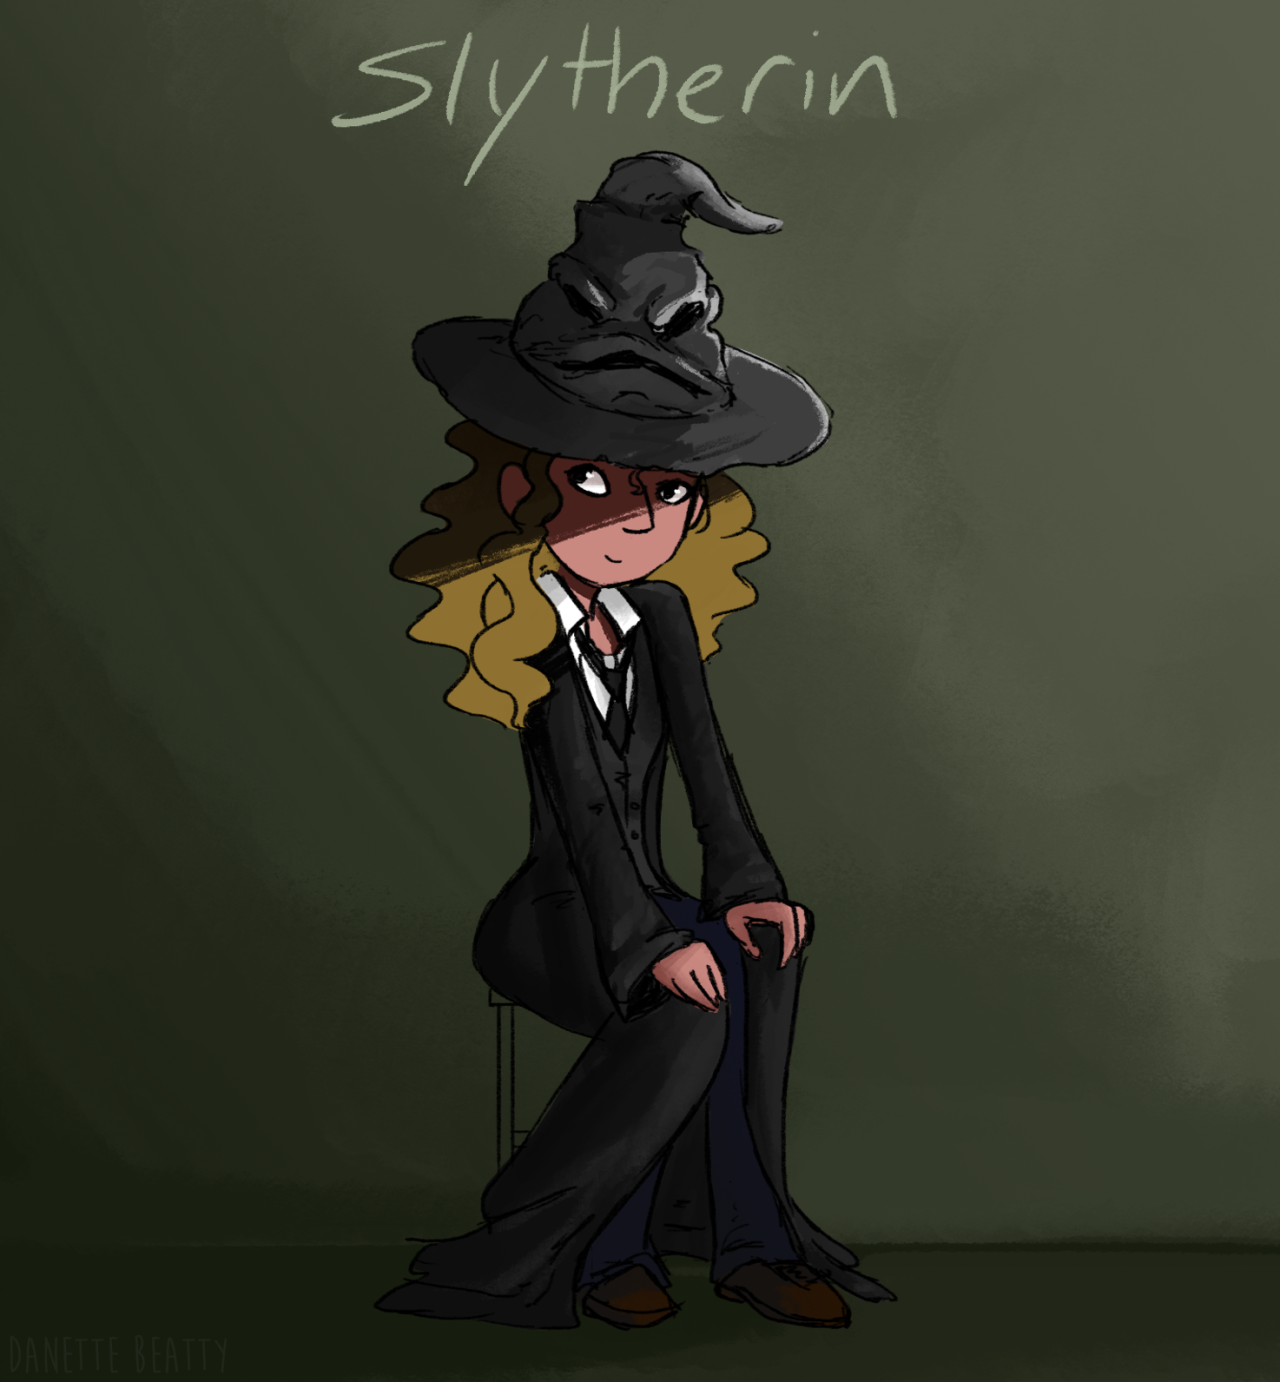 #131 I just got done re-watching all the Harry Potter movies and did a quick drawing of me getting sorted  : D I certainly feel like the bad guy getting sorted into Slytherin, but it kinda makes sense too